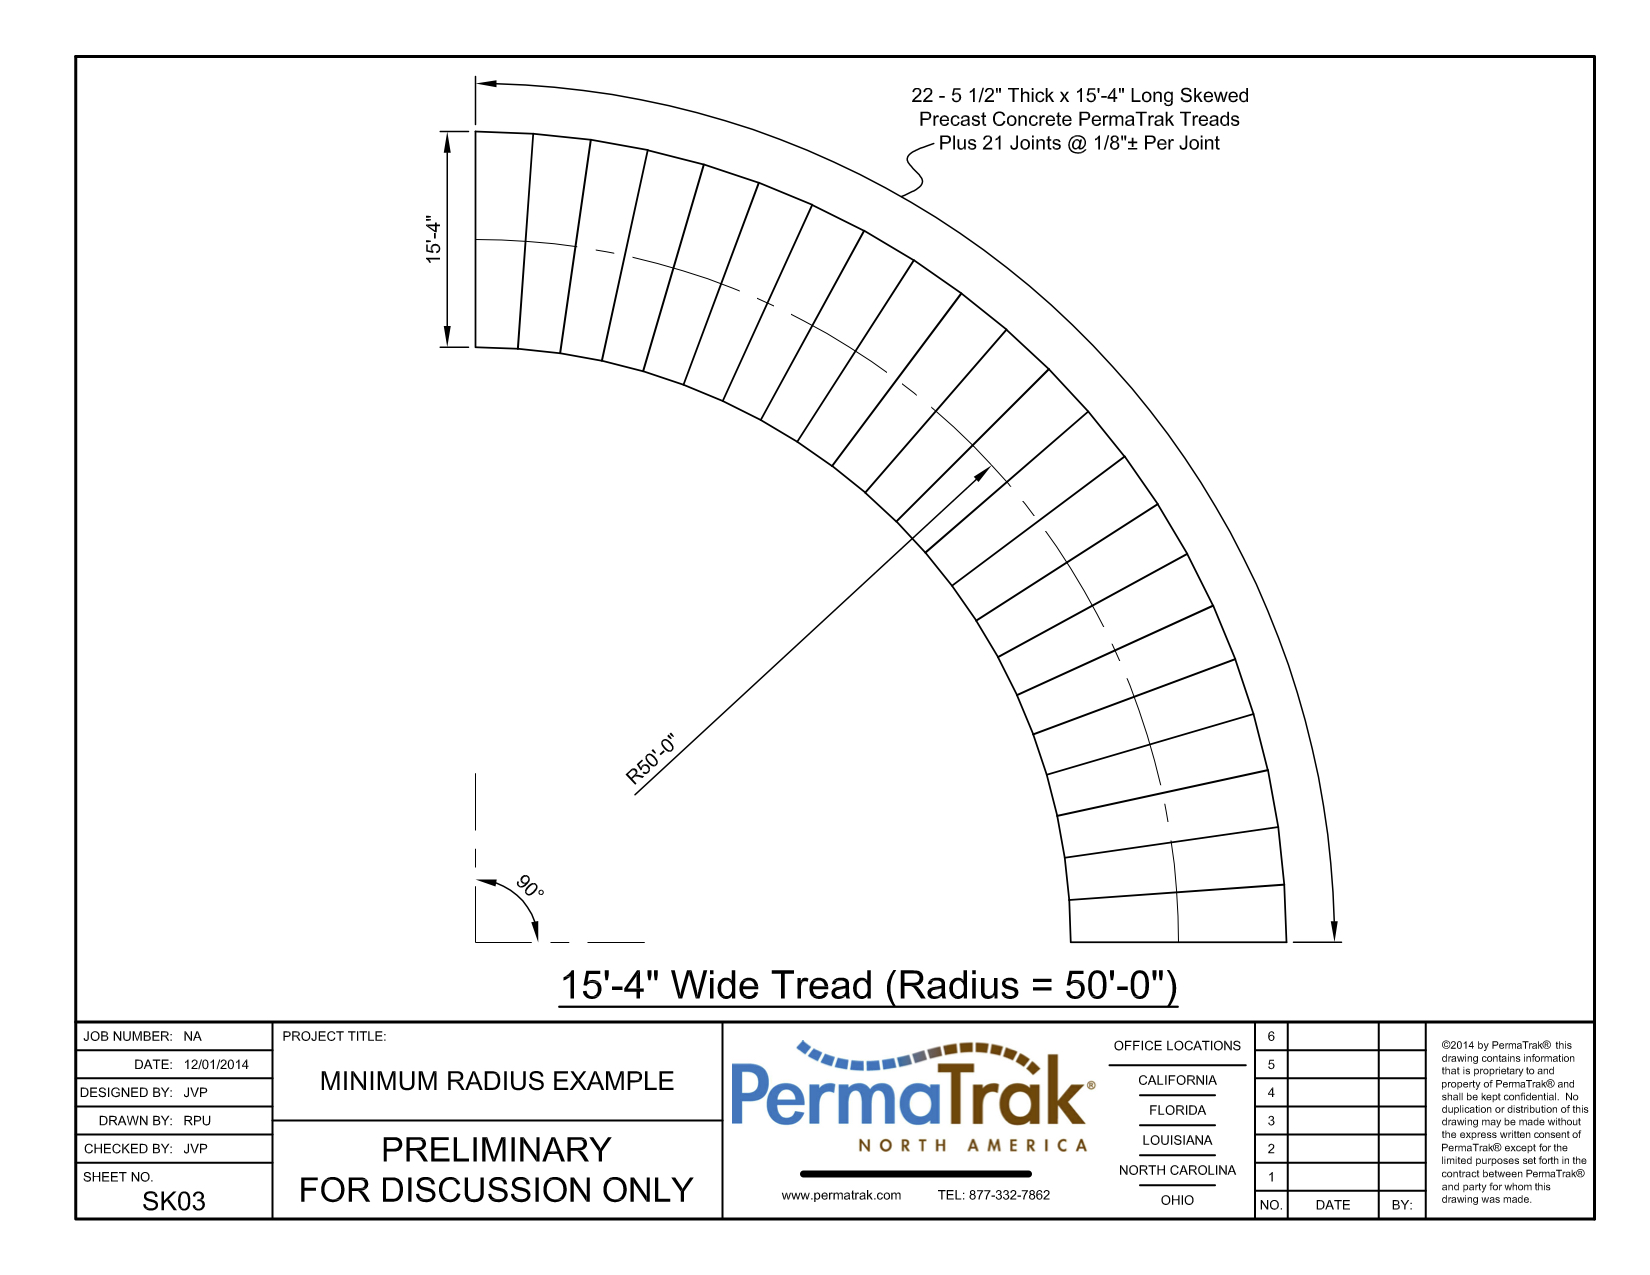 Boardwalk_Min_Radius_Drawings_15-4